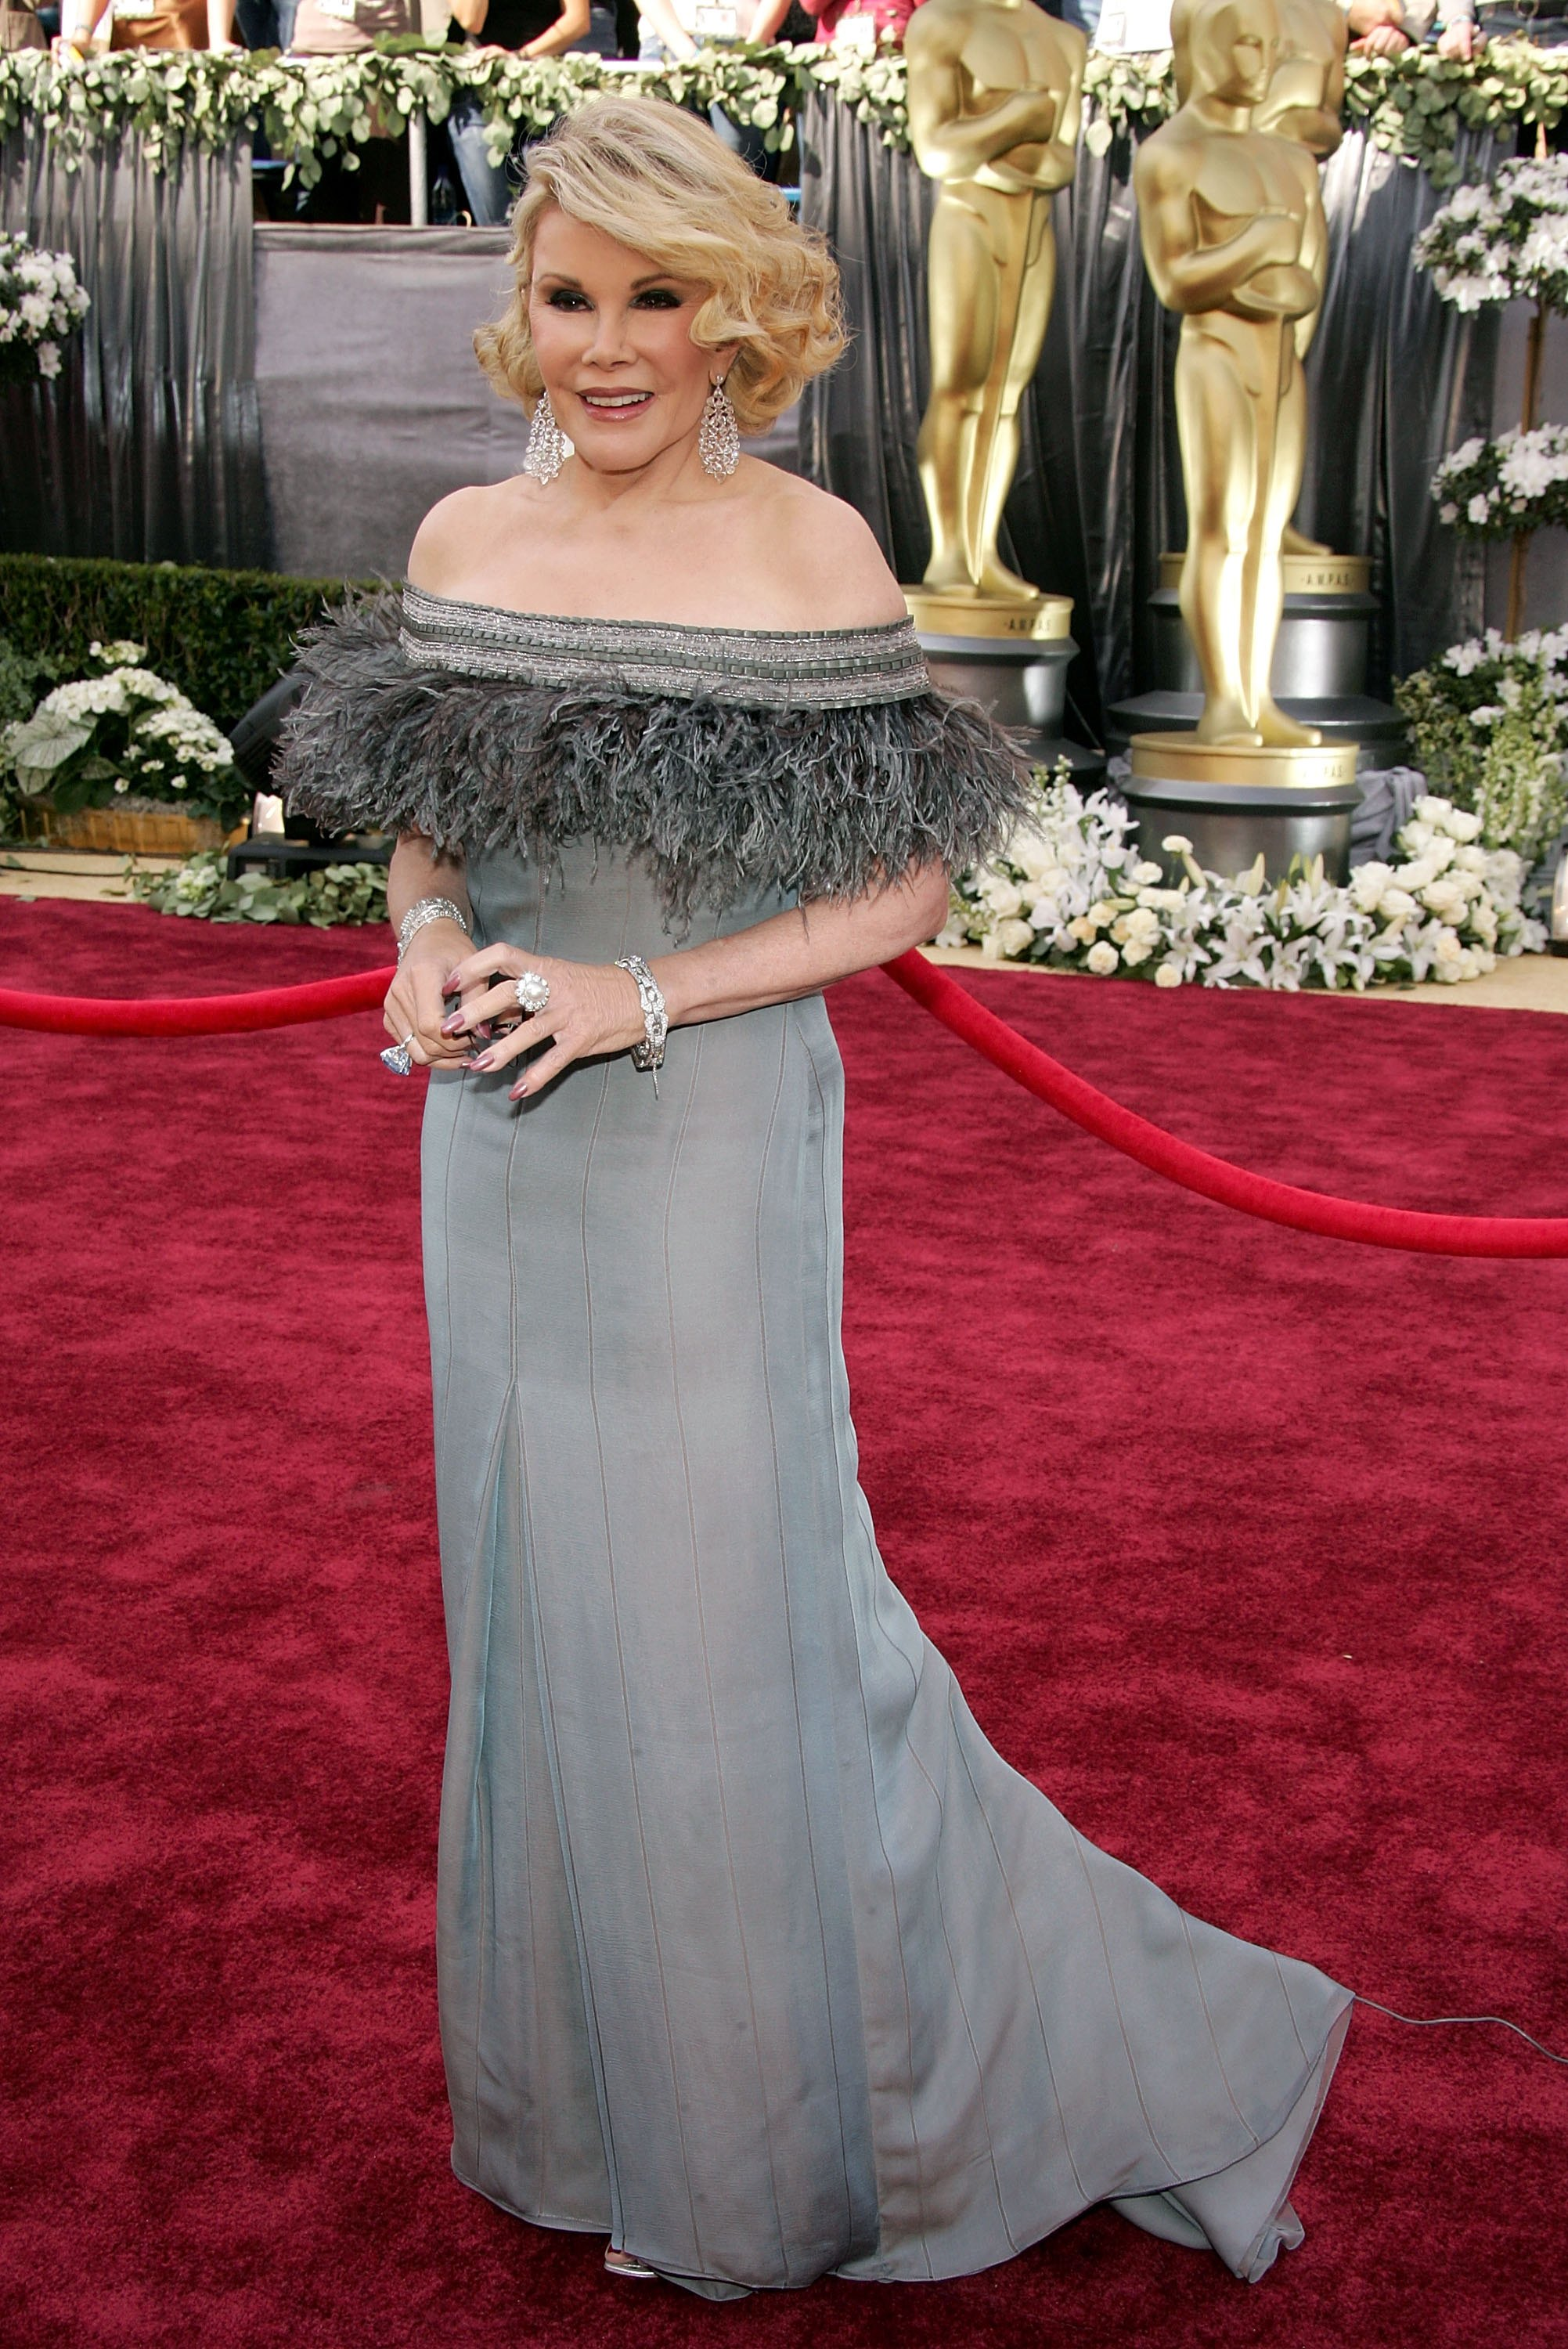 Television host Joan Rivers arrives to the 78th Annual Academy Awards at the Kodak Theatre on March 5, 2006 in Hollywood.